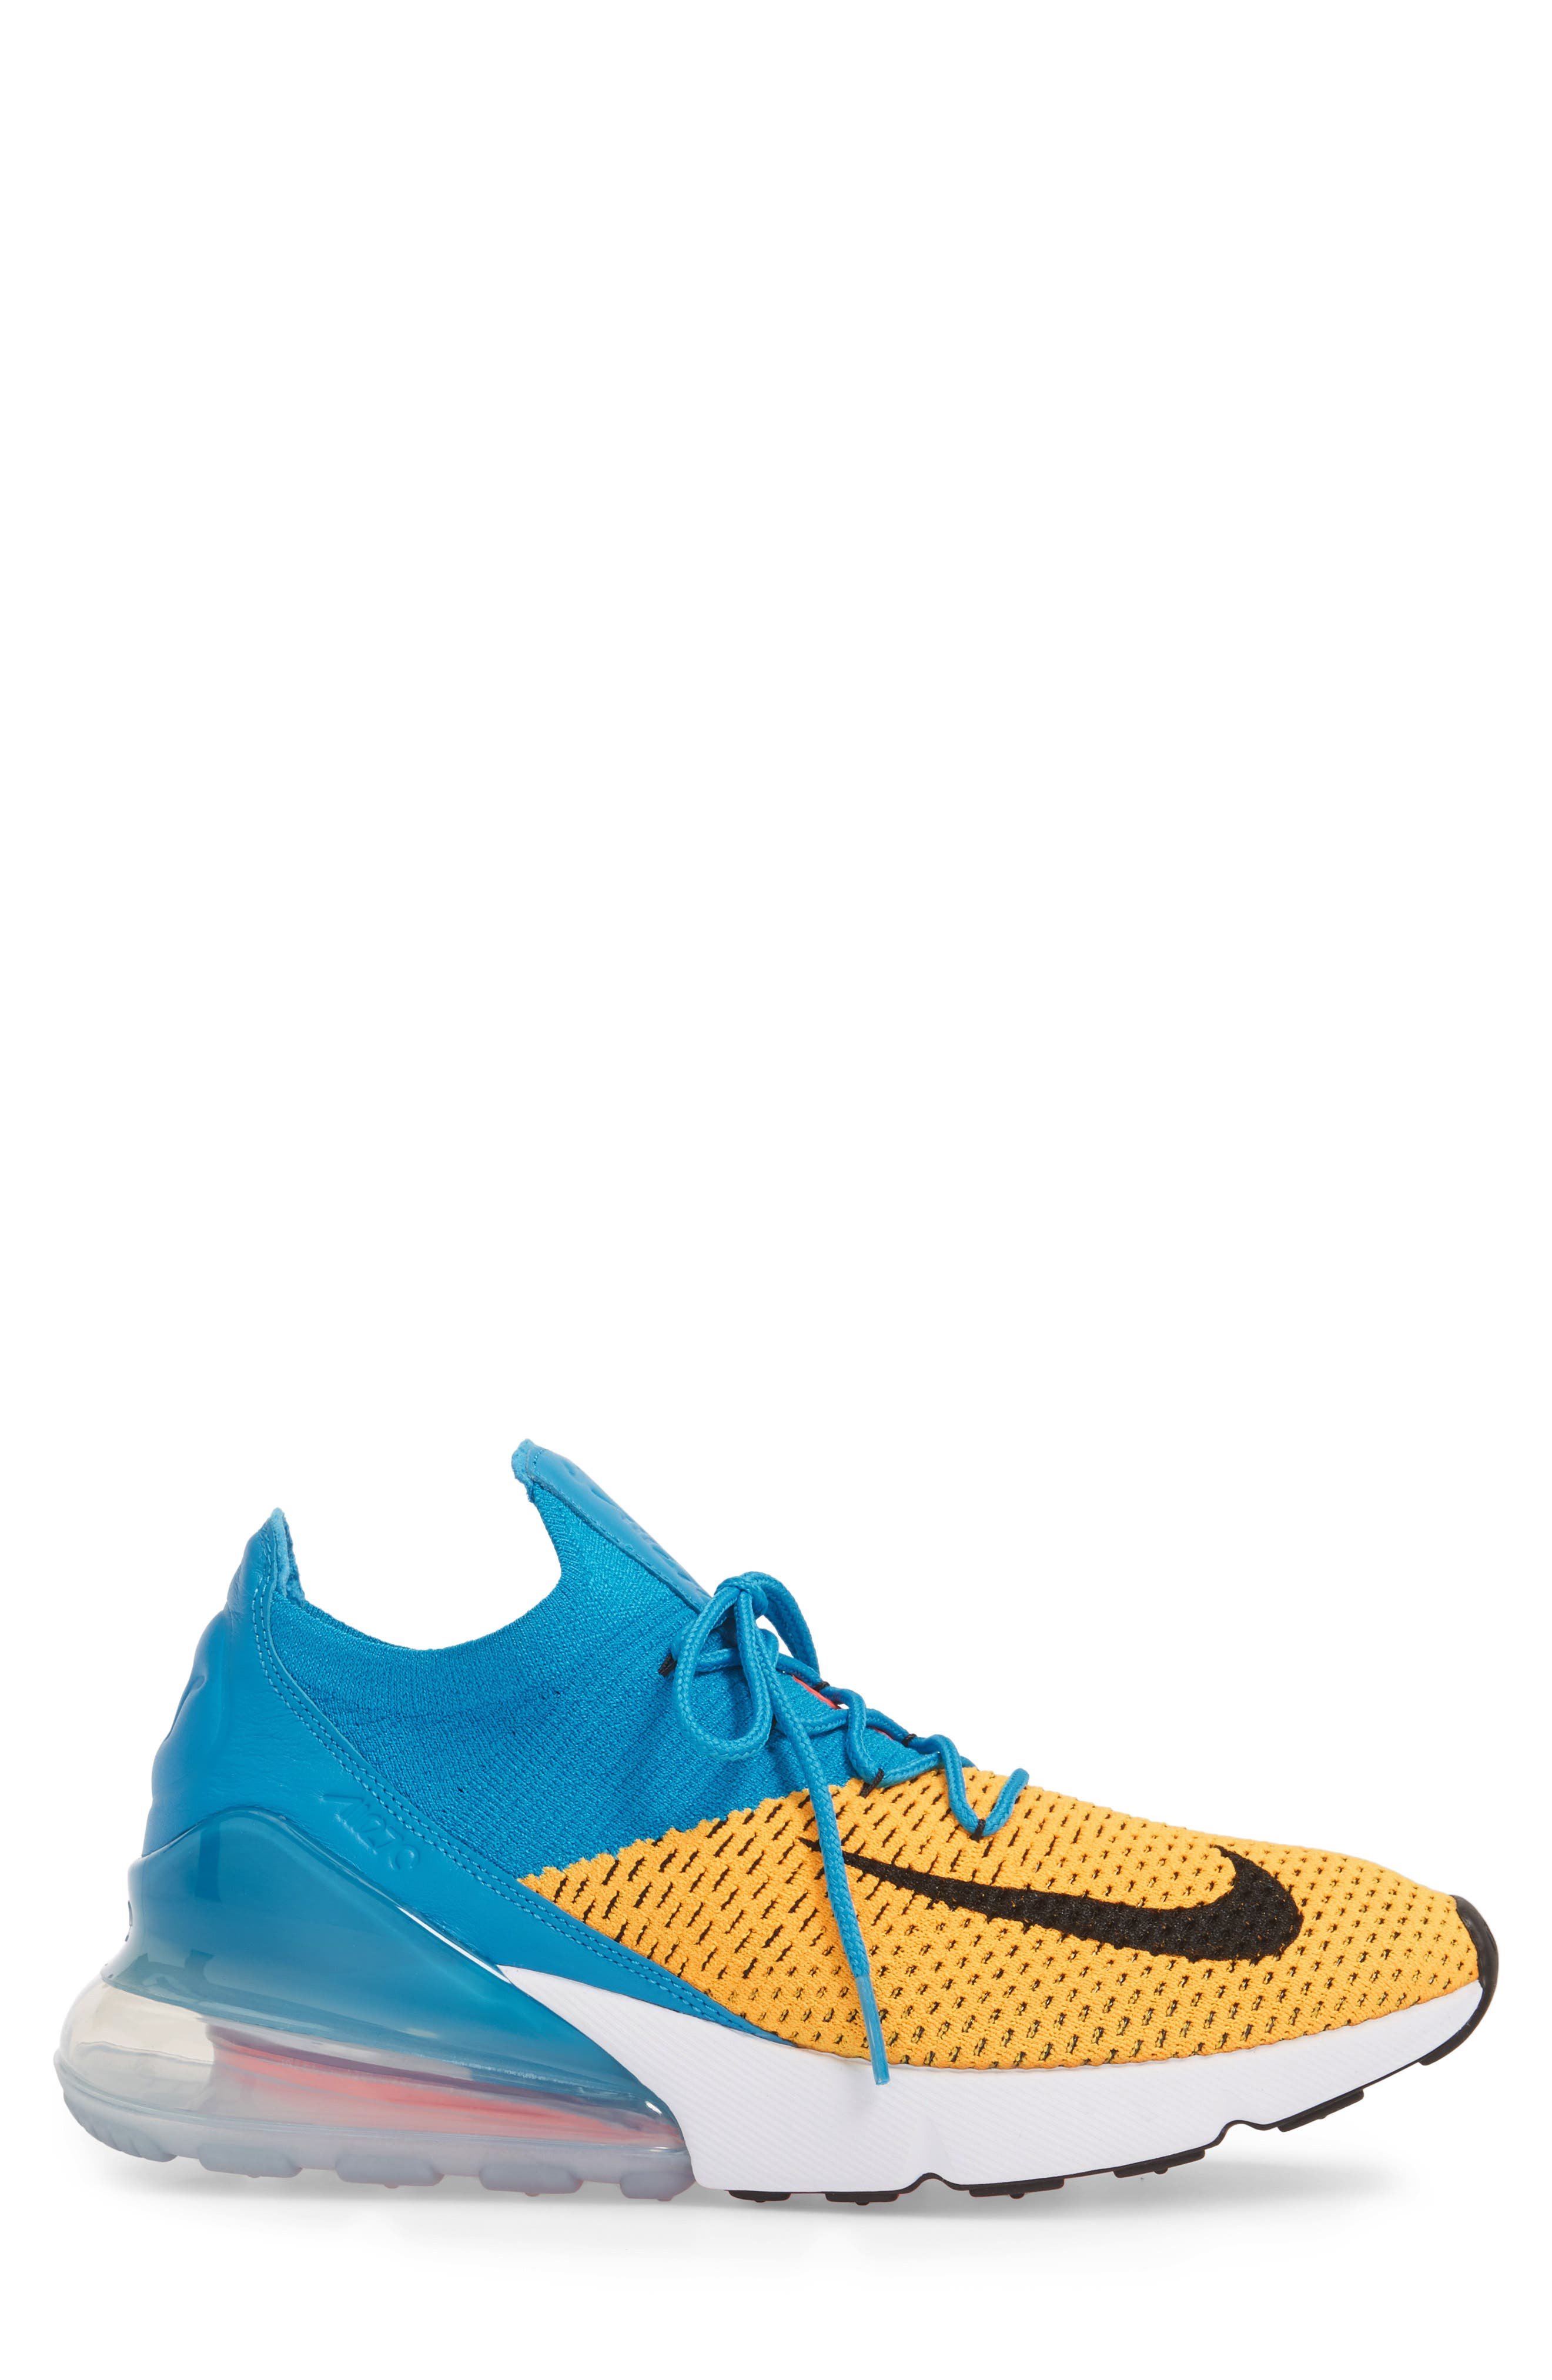 Air Max 270 Flyknit Sneaker,                             Alternate thumbnail 21, color,